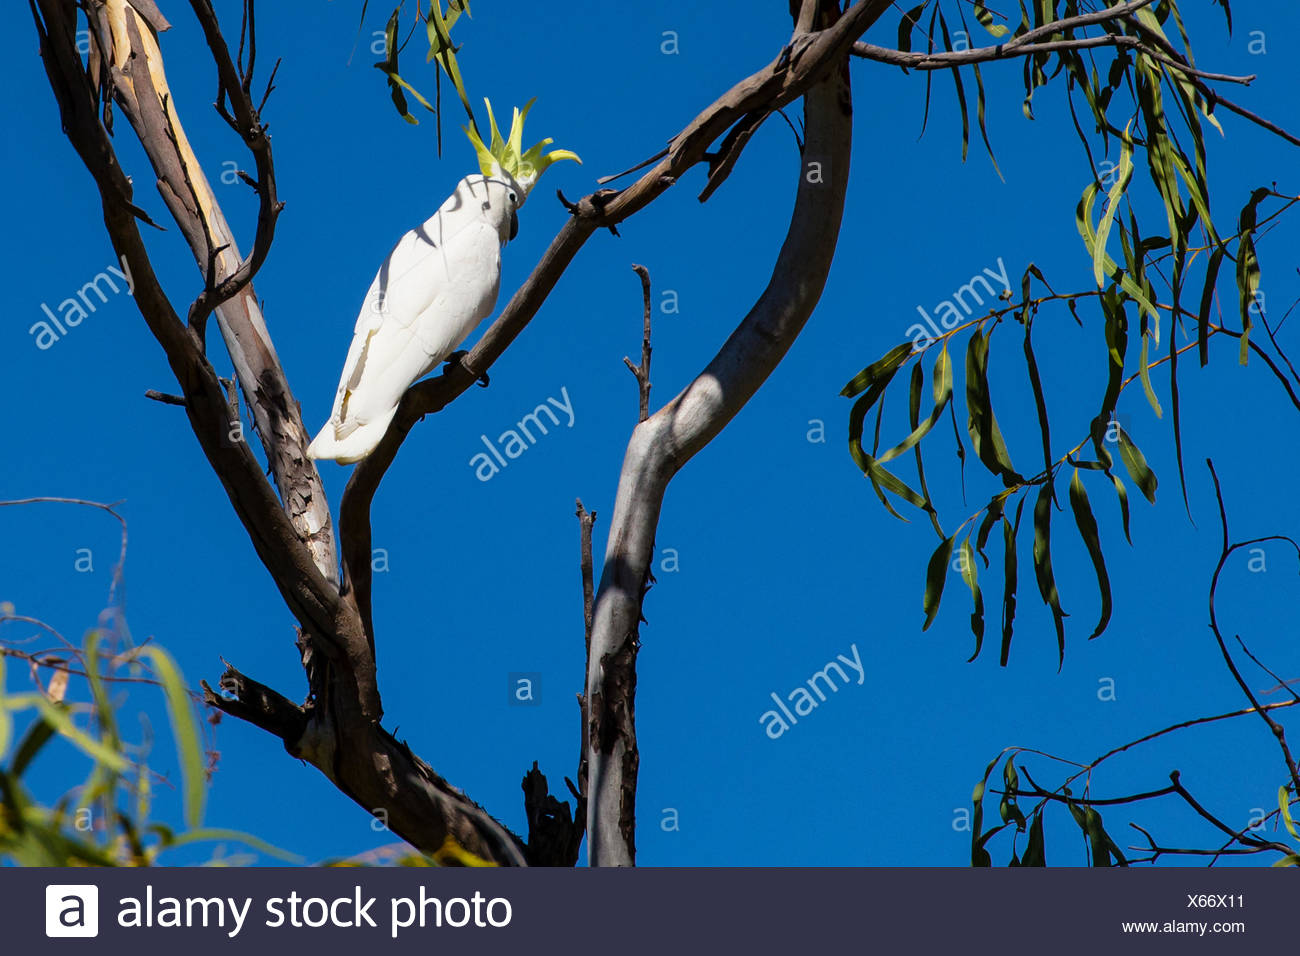 A Sulpher-crested Cockatoo (Cacatua galerita) perched on a branch near Ord River in the Kimberley Region of Northwest Australia. - Stock Image